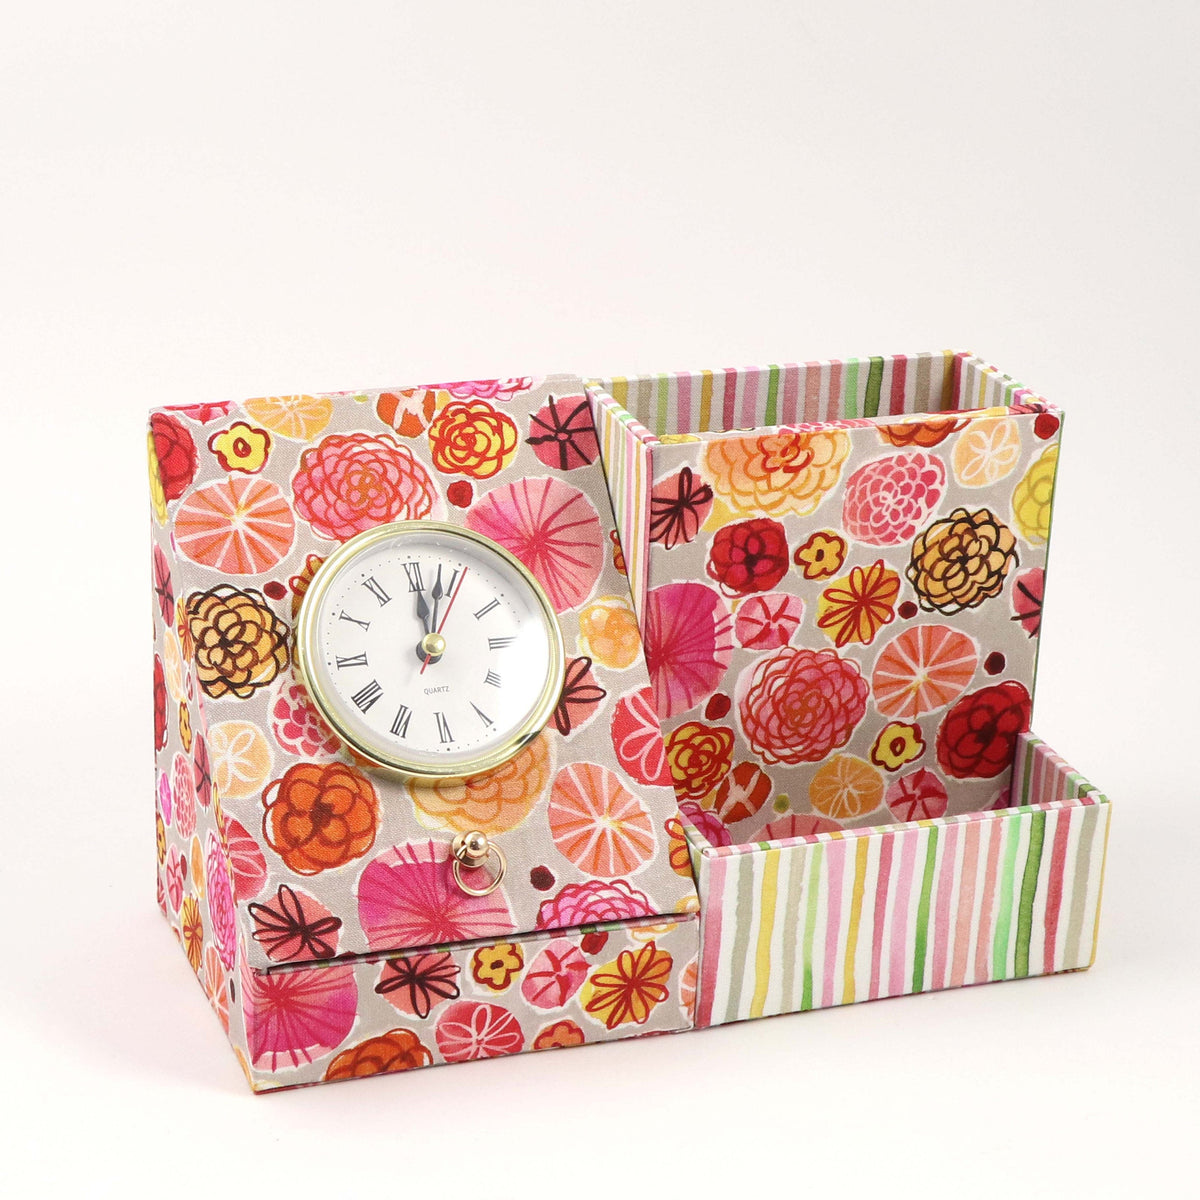 Desk clock organizer DIY kit, fabric box kit, cartonnage kit 175, Online instructions included - Colorway Arts